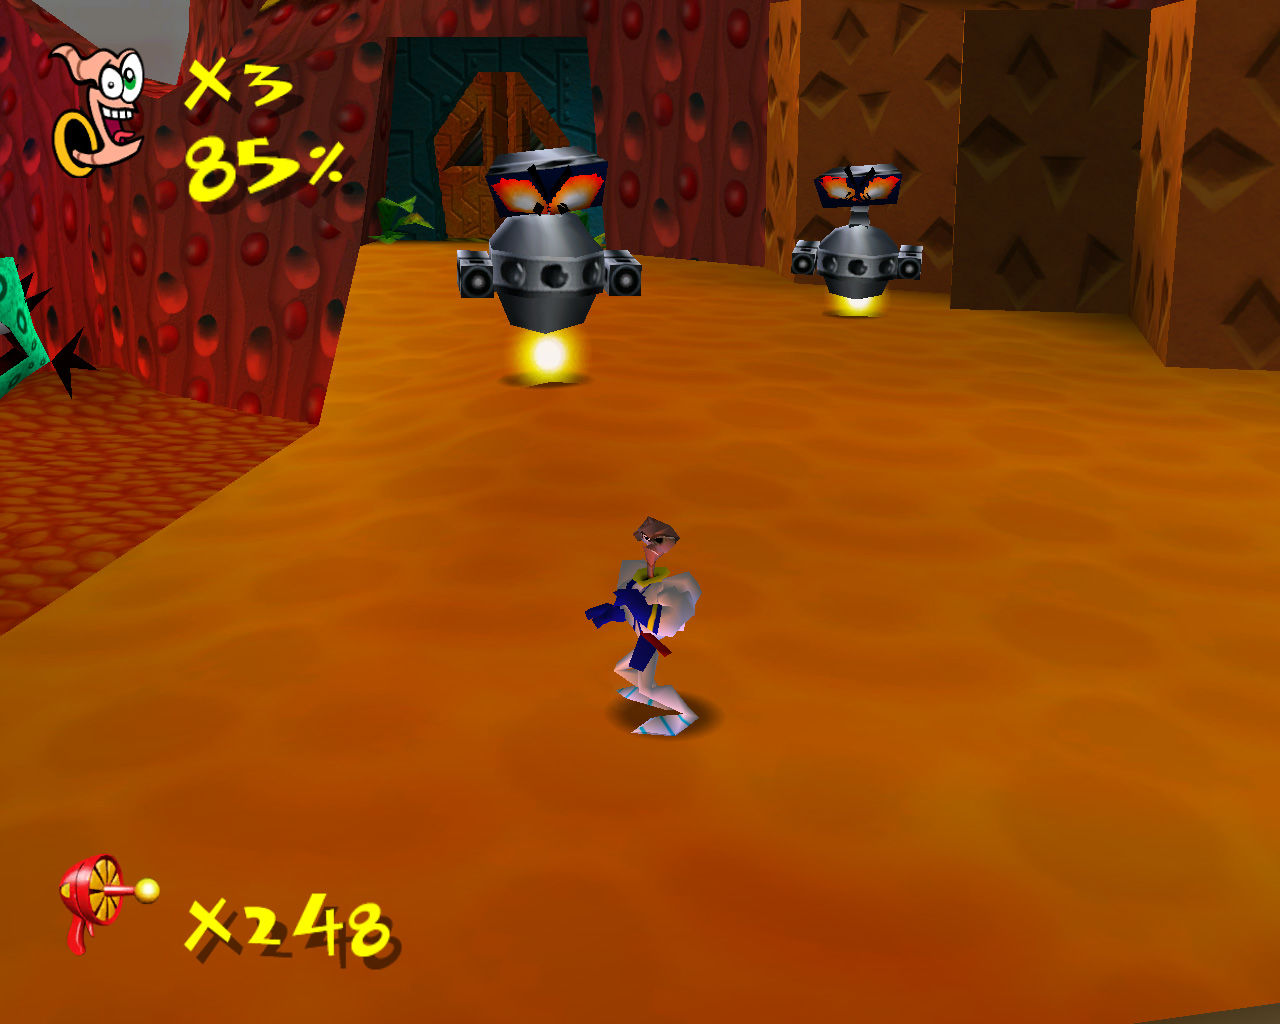 Earthworm Jim 3D Screenshots for Windows - MobyGames